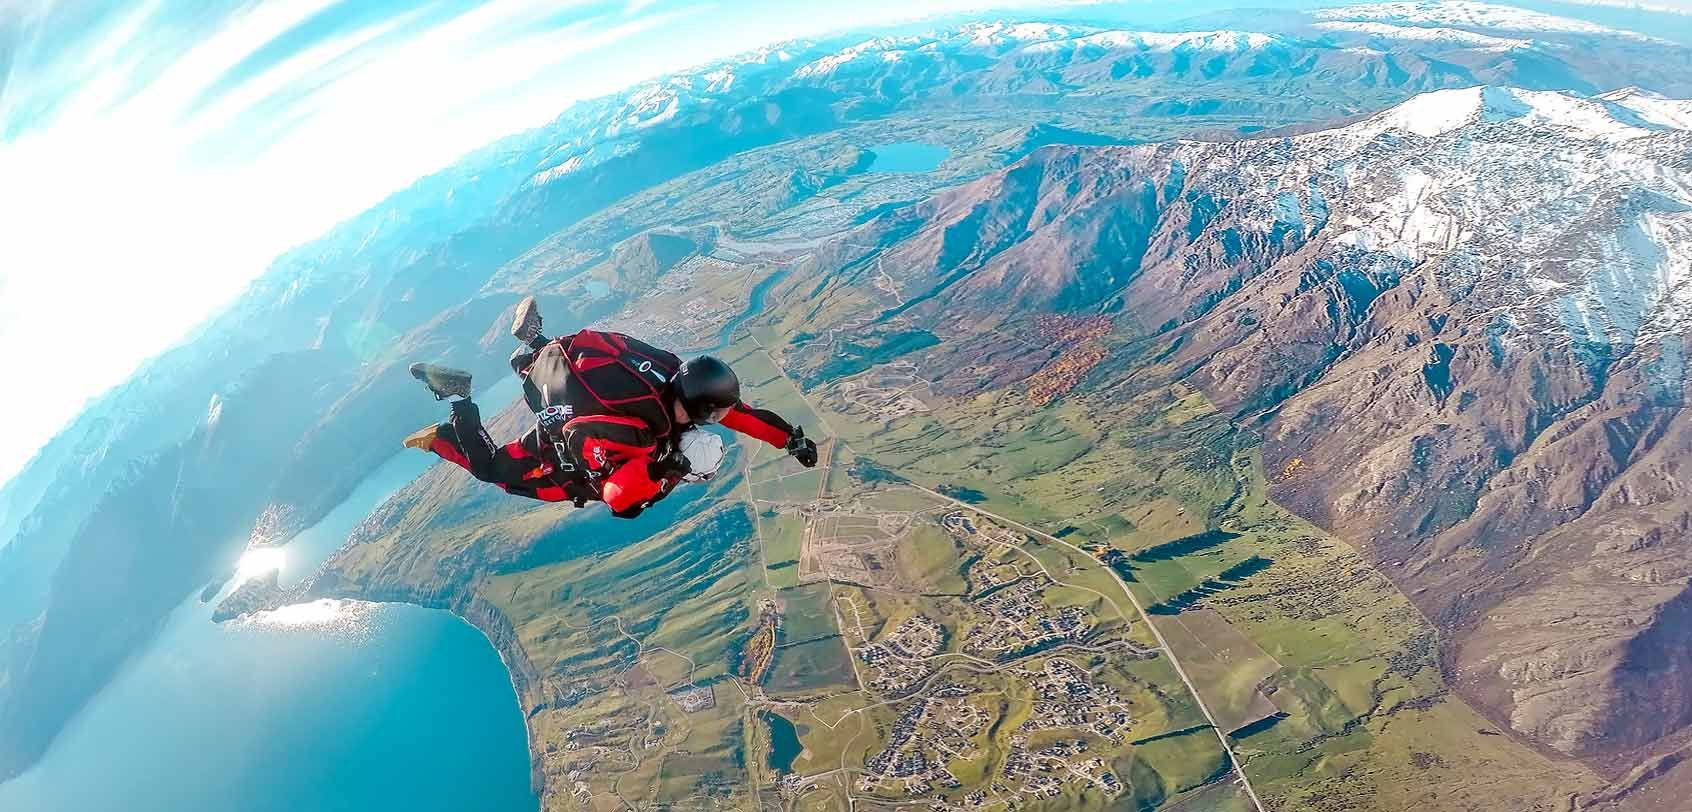 Base Jumping Wallpaper Active Lifestyle Photo Mountains And The